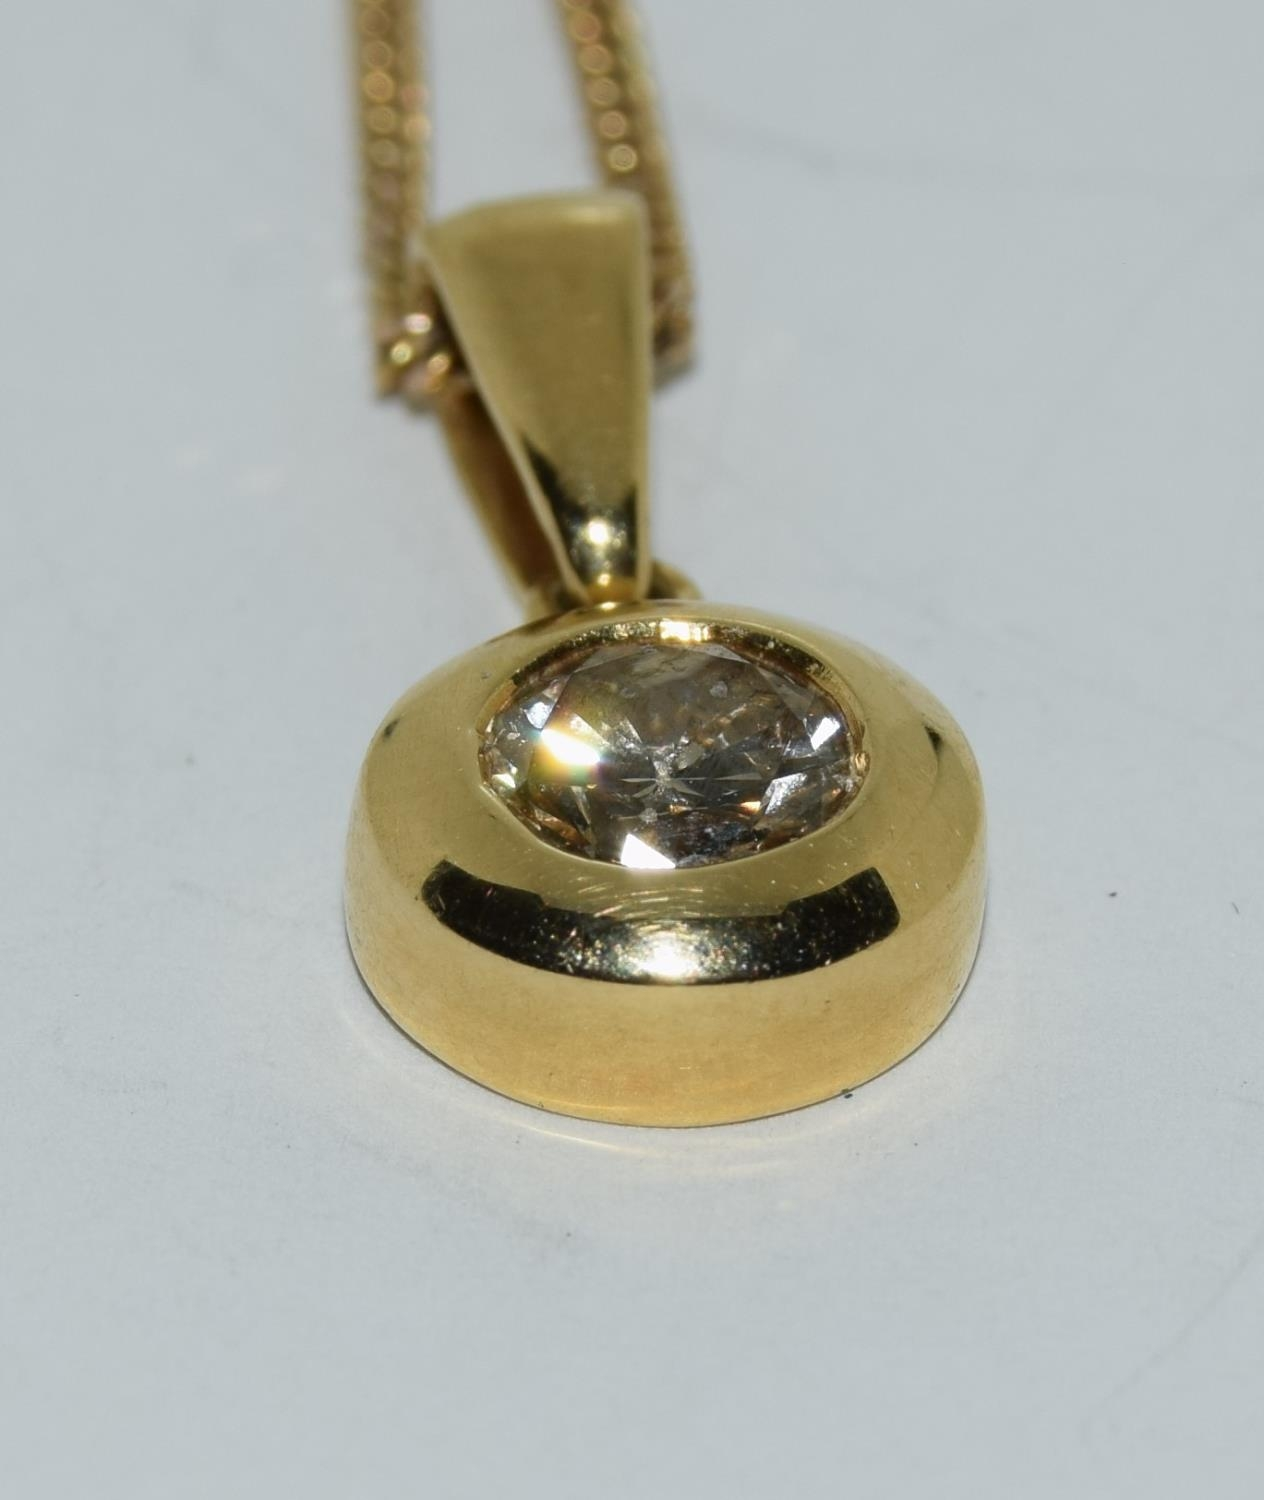 18ct gold diamond pendant of approx 0.6ct on a 9ct gold chain